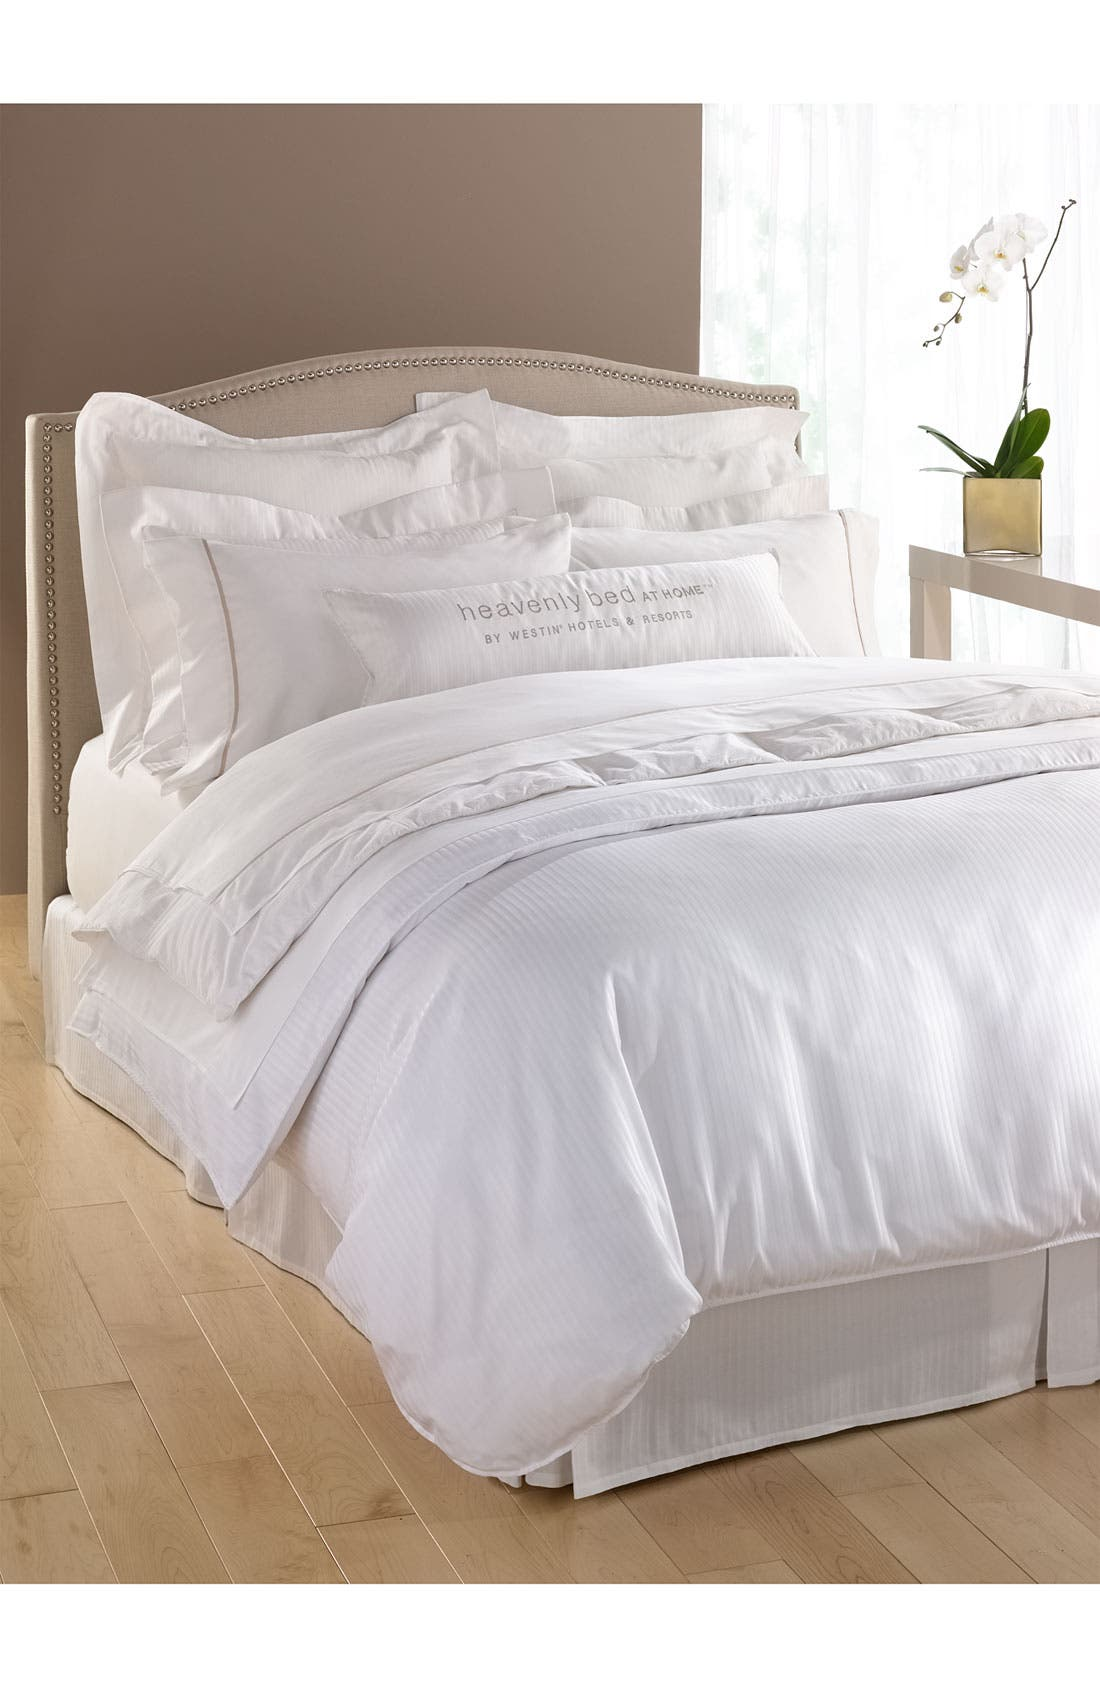 Alternate Image 3  - Westin At Home 300 Thread Count Luxe Flat Sheet